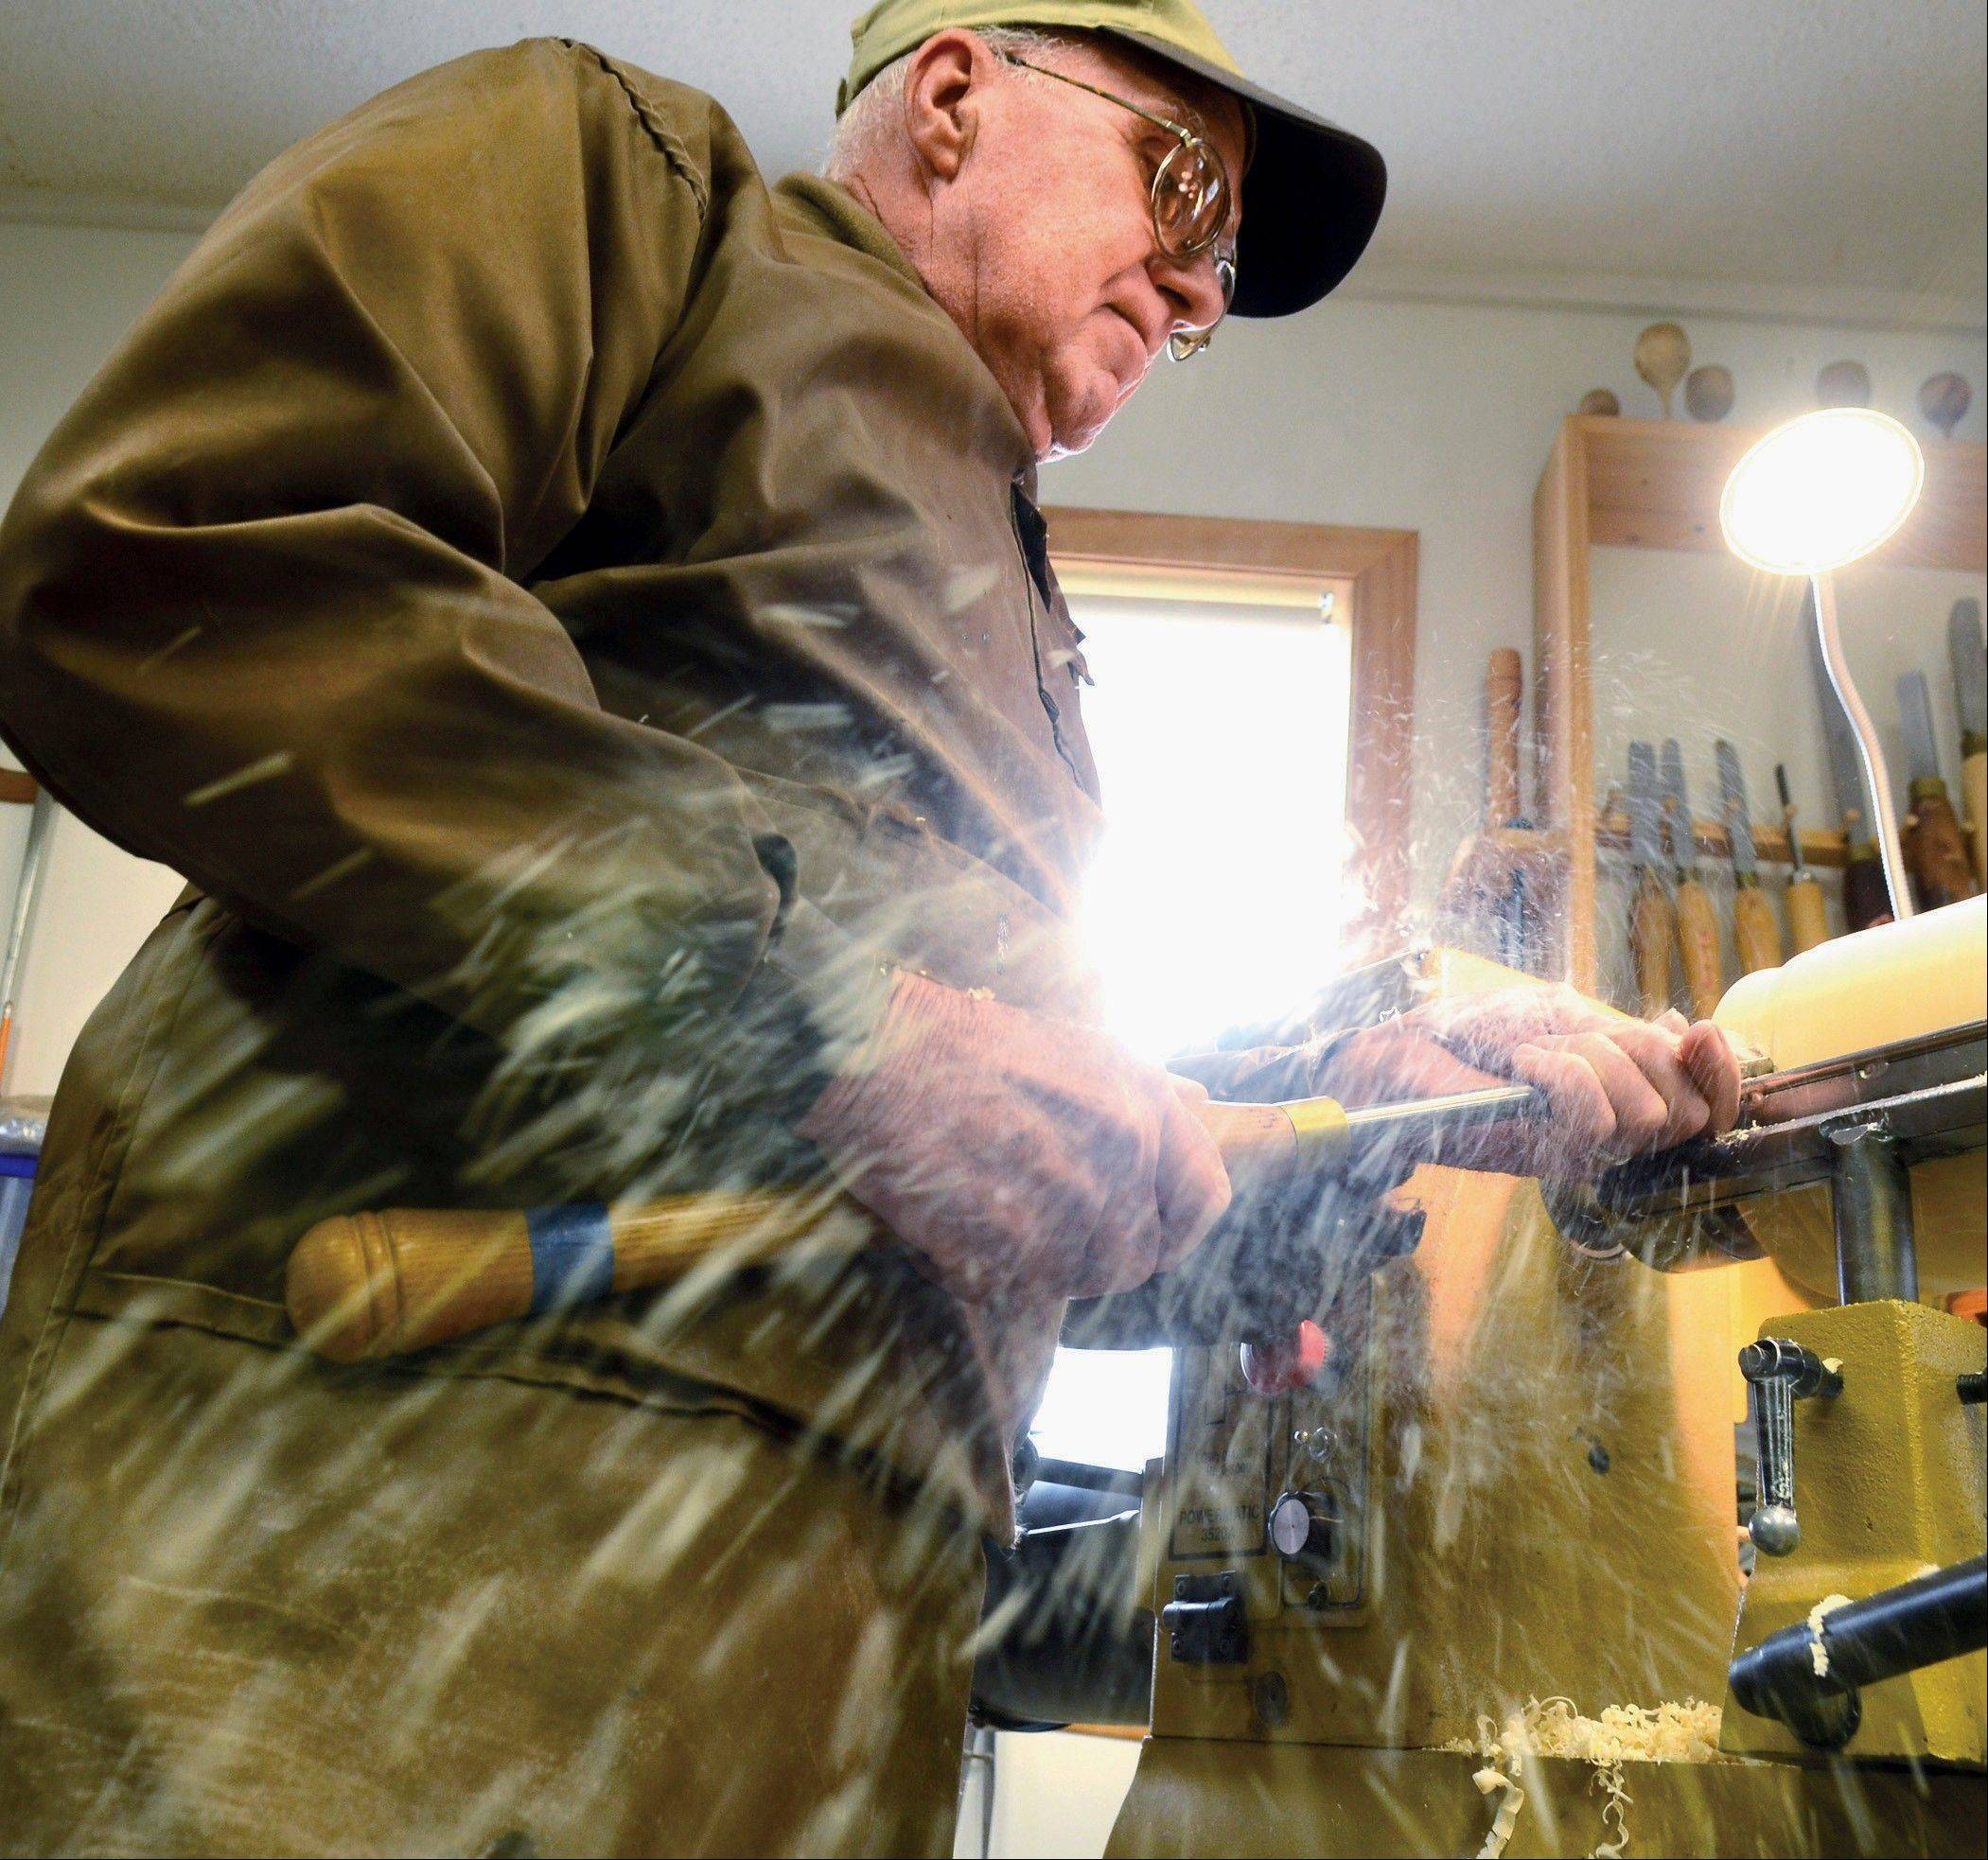 Lloyd Beckman, 68, turns a piece of wood on a lathe at his Sterling, home.